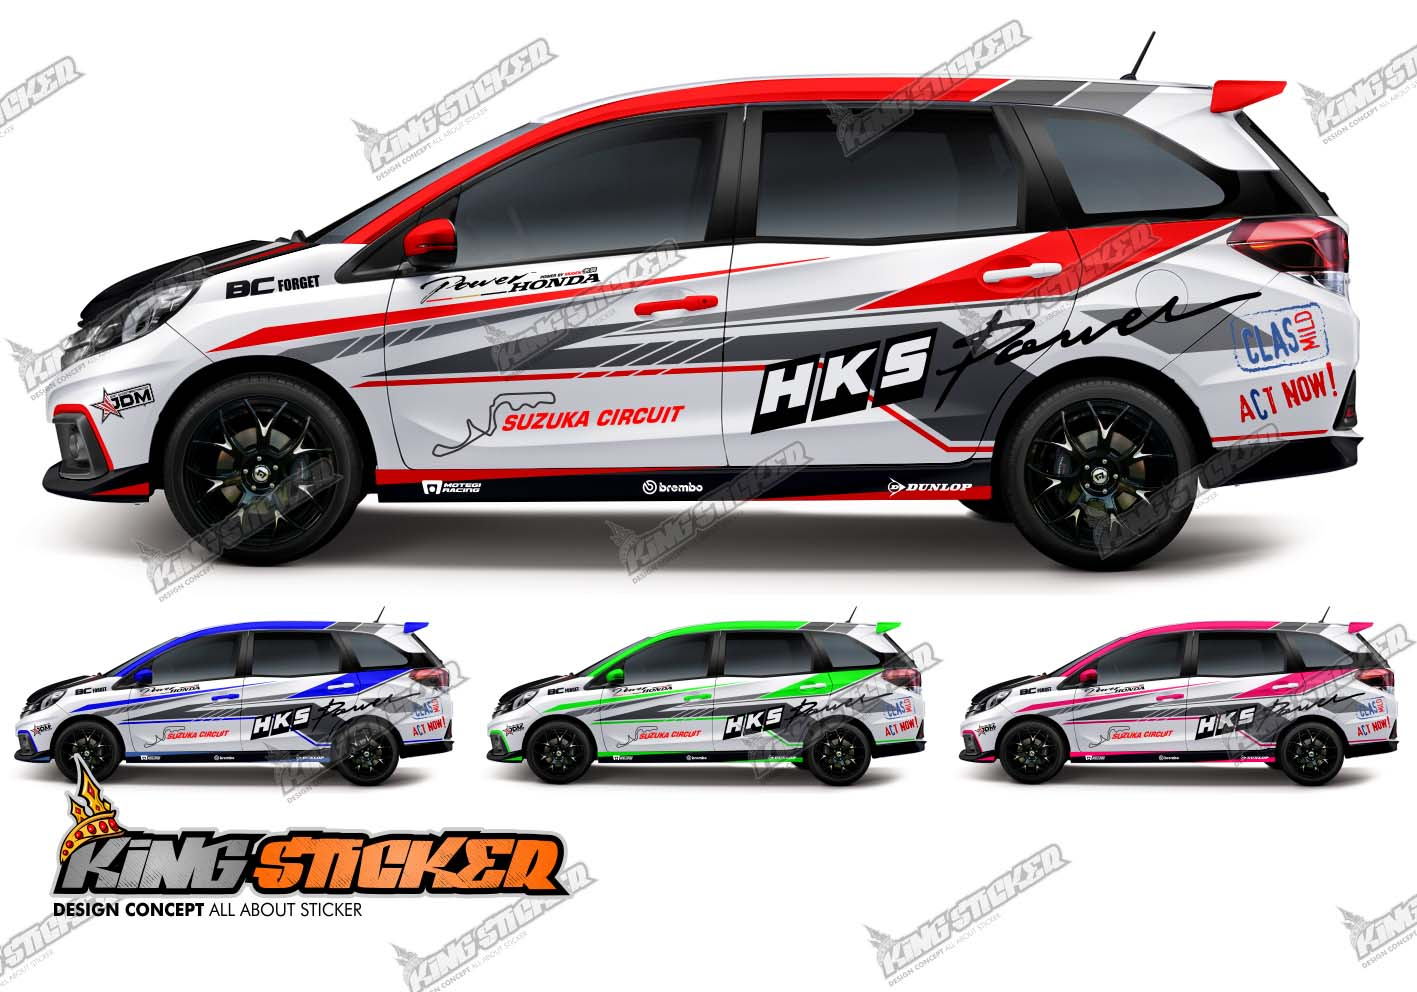 Cutting Sticker Honda Mobilio Putih Satu Sticker